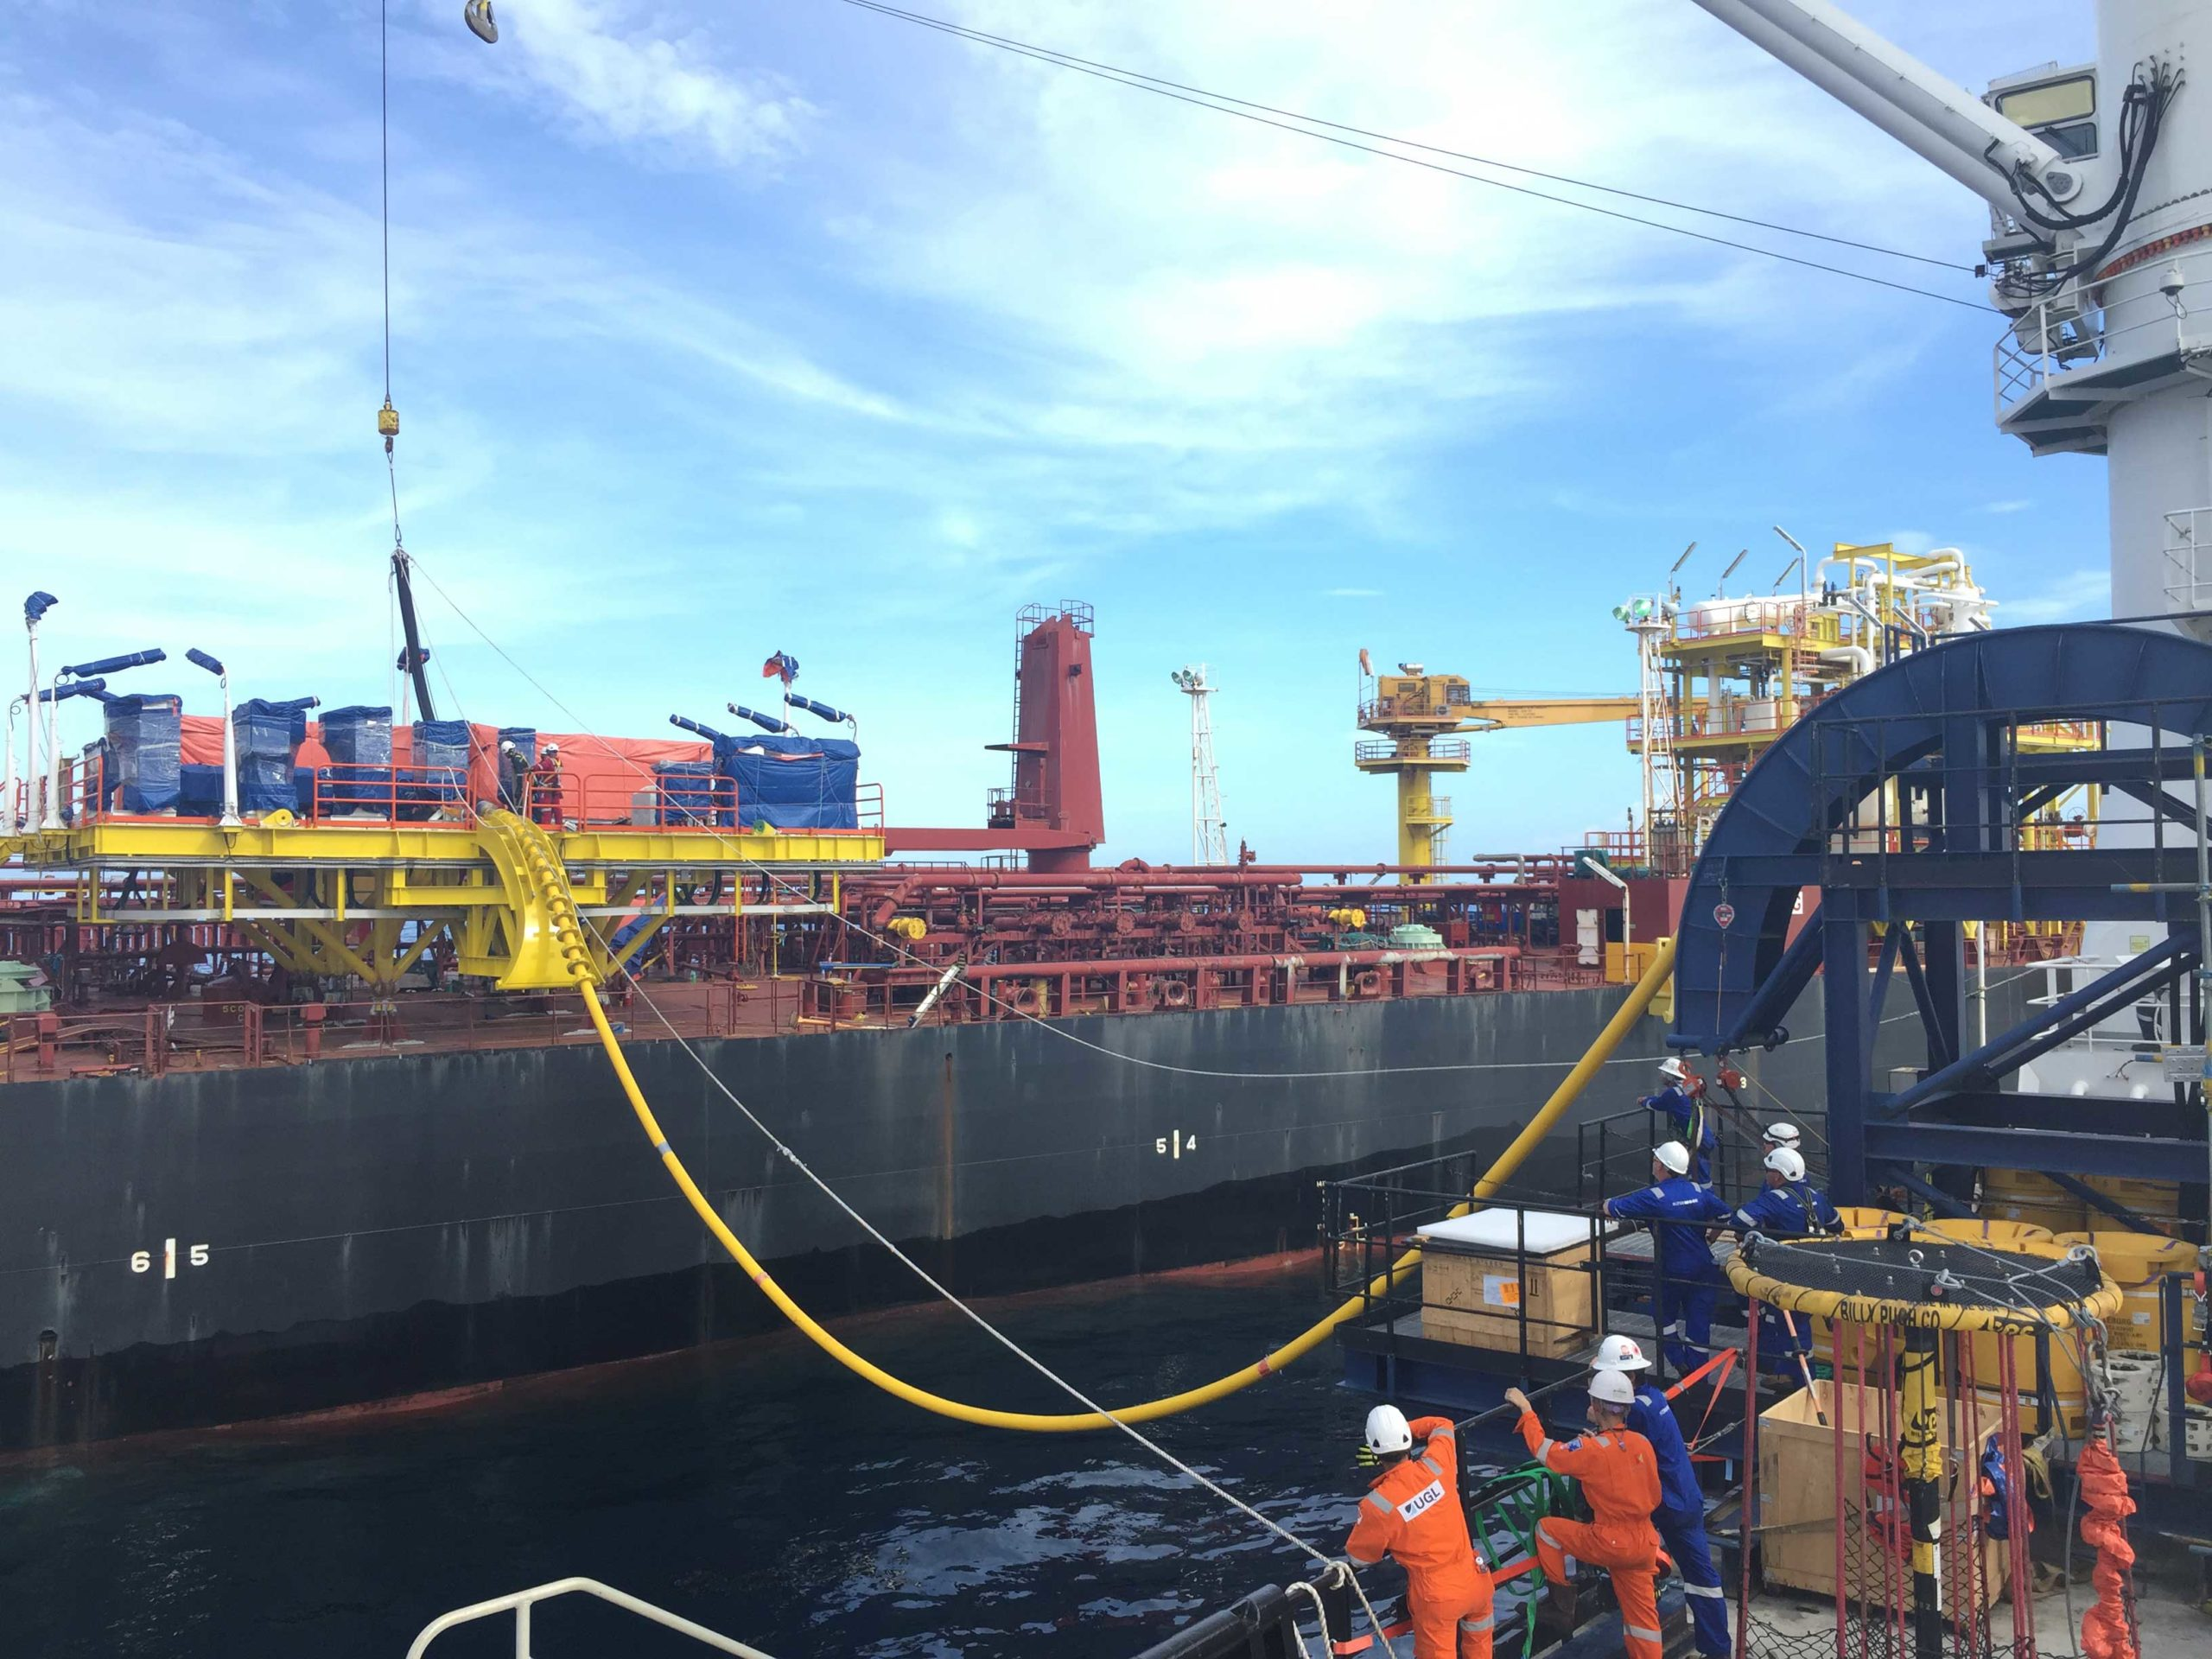 InterMoor installs new ESP system for the Mampu-1 FPSO facility